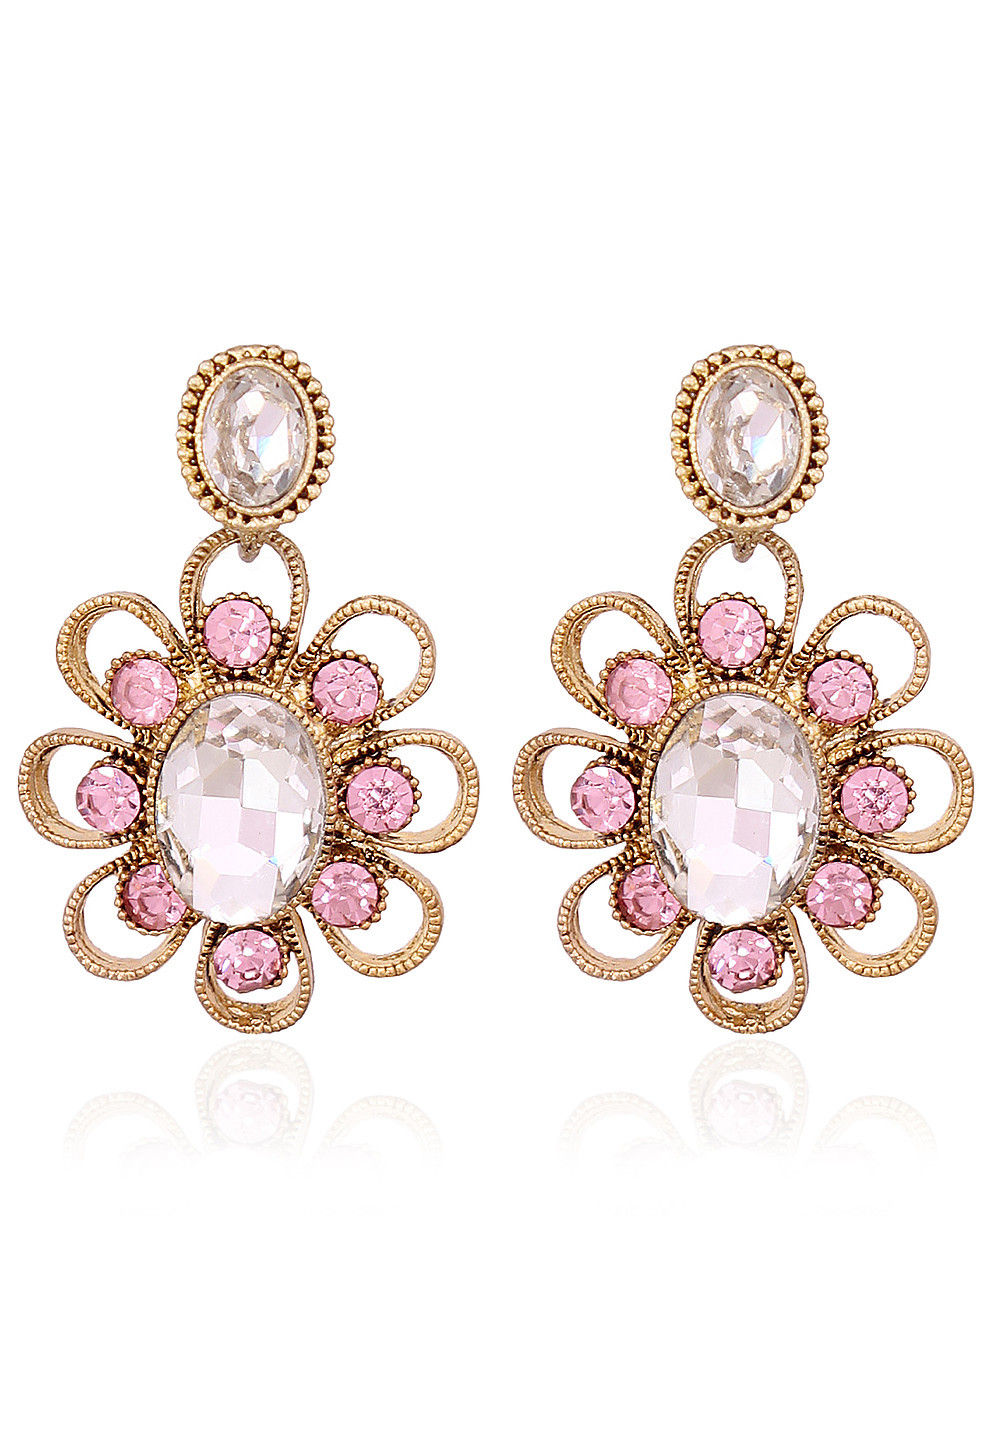 Stone Studded Earring in Pink and White